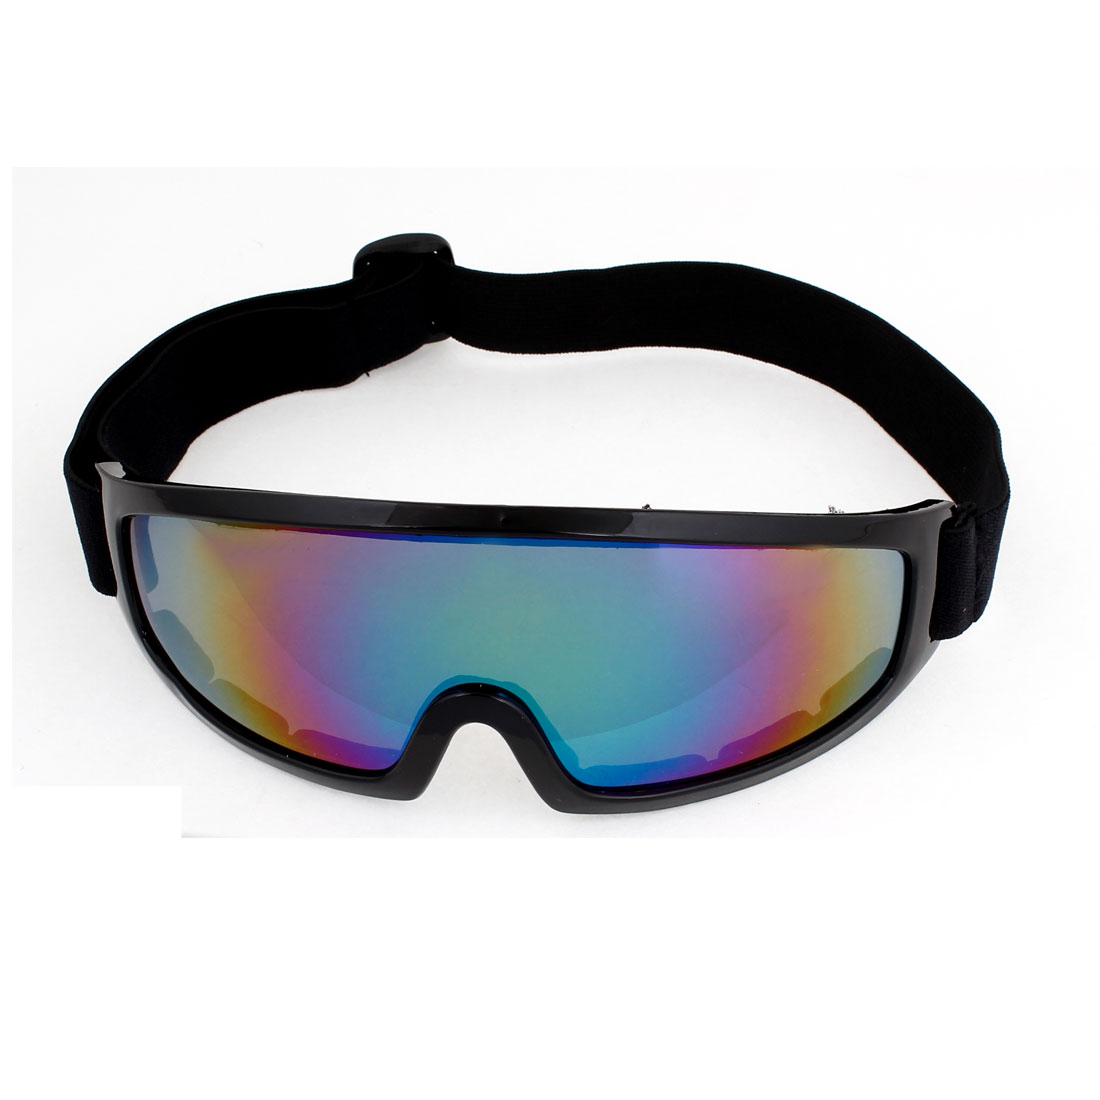 Unisex Outdoor Sports Colorful Lens Black Rim Ski Goggles Eyeglasses Eyewear